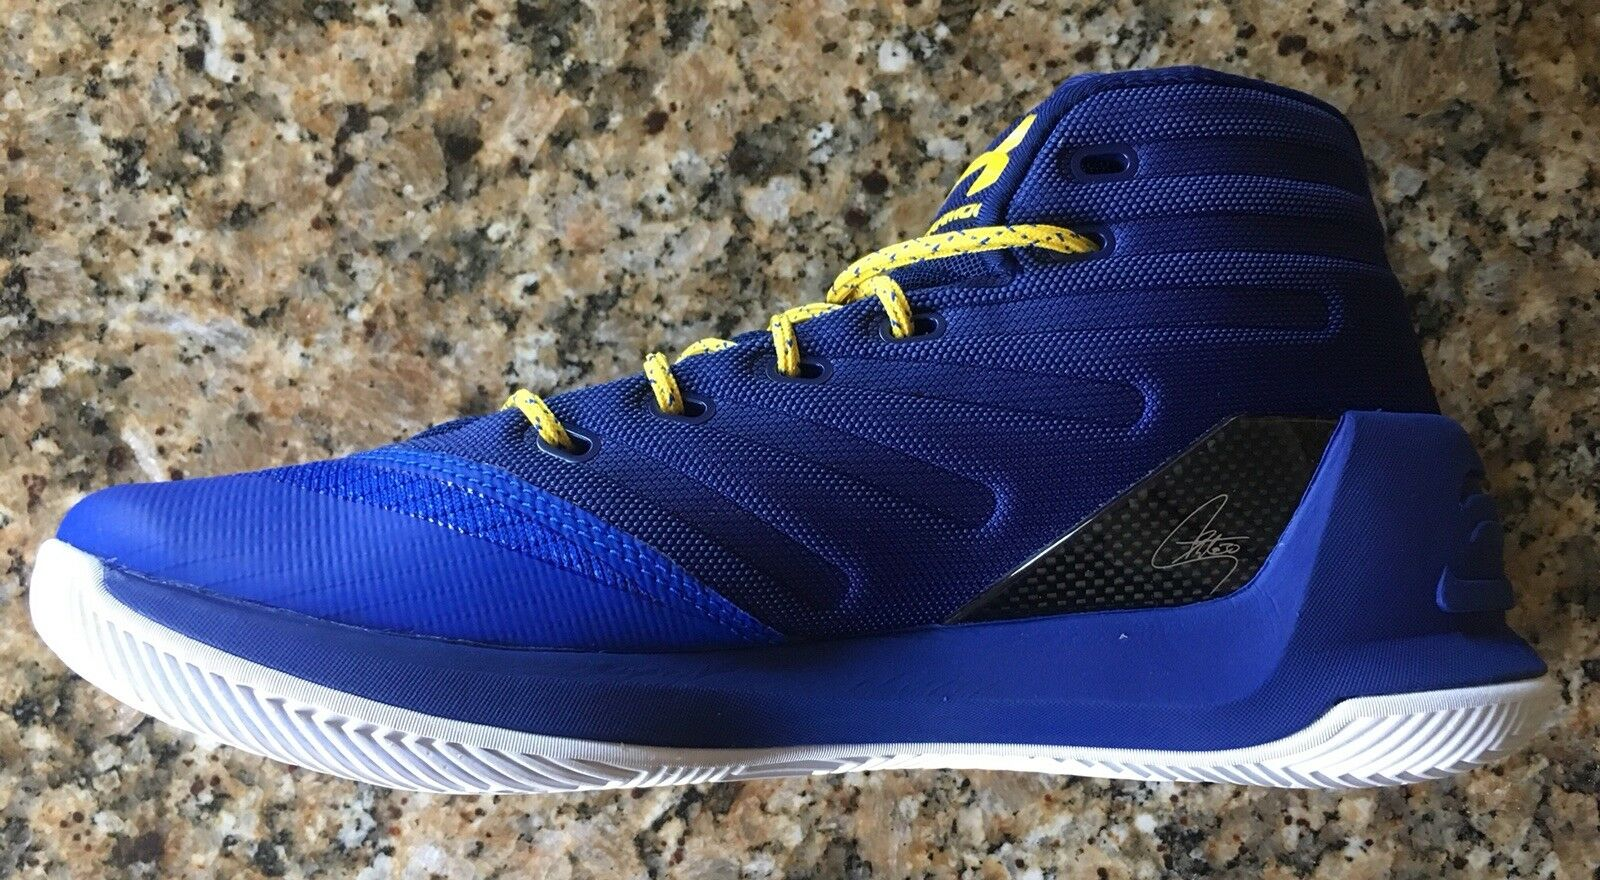 low priced 92b98 19c74 UNDER ARMOUR UA STEPH CURRY 3 MEN'S BASKETBALL BLUE/YELLOW SNEAKERS SHOE  1269279